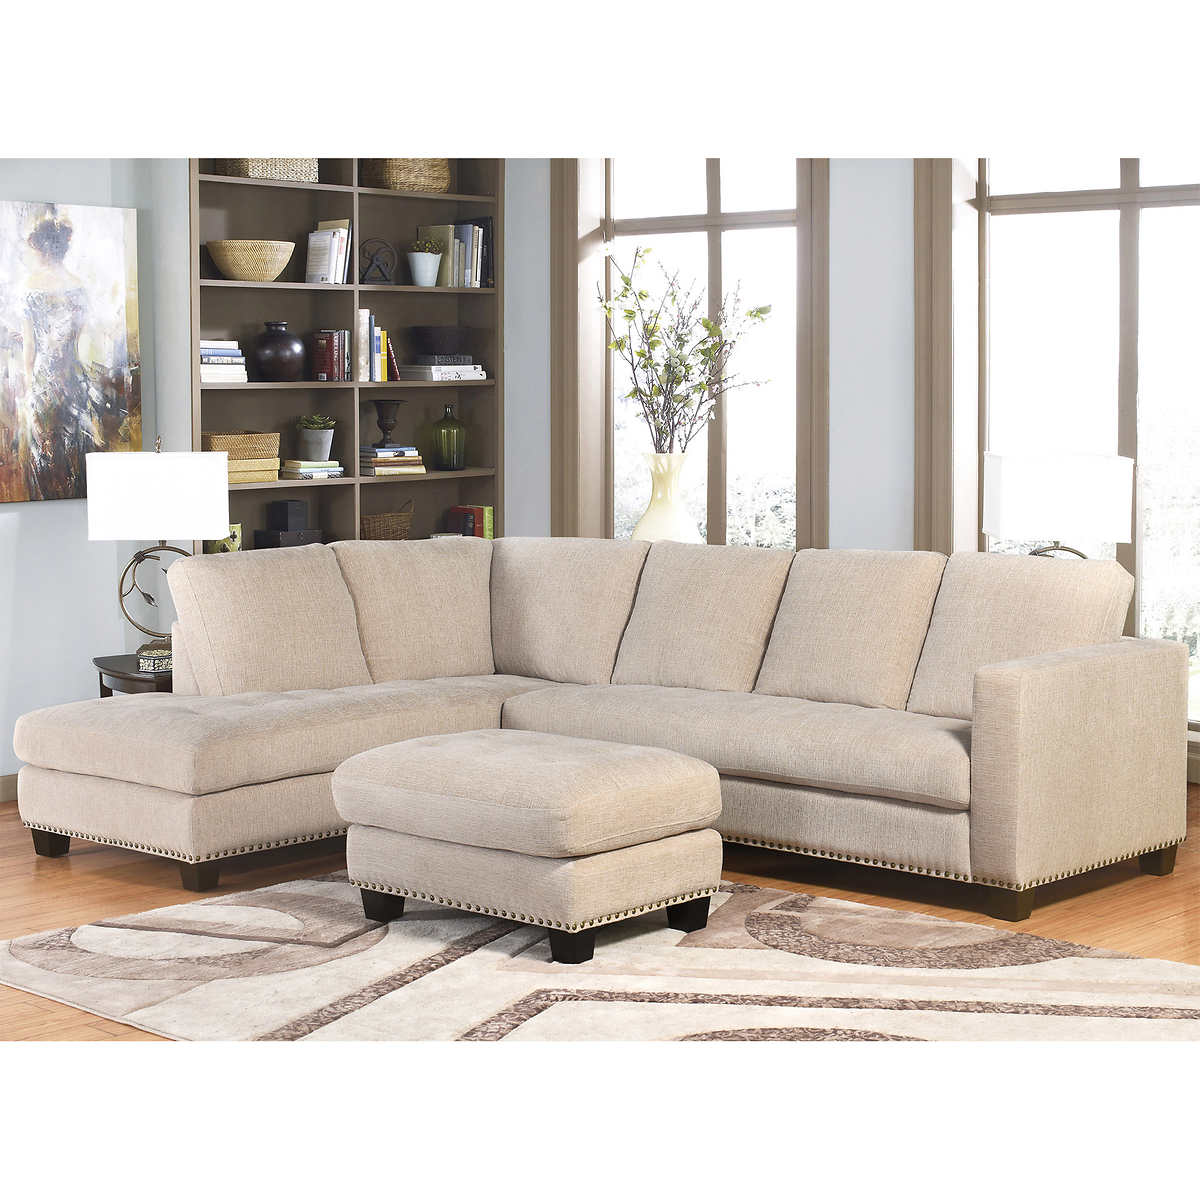 fabric sofas sectionals costco richmond fabric sectional and ottoman living room set